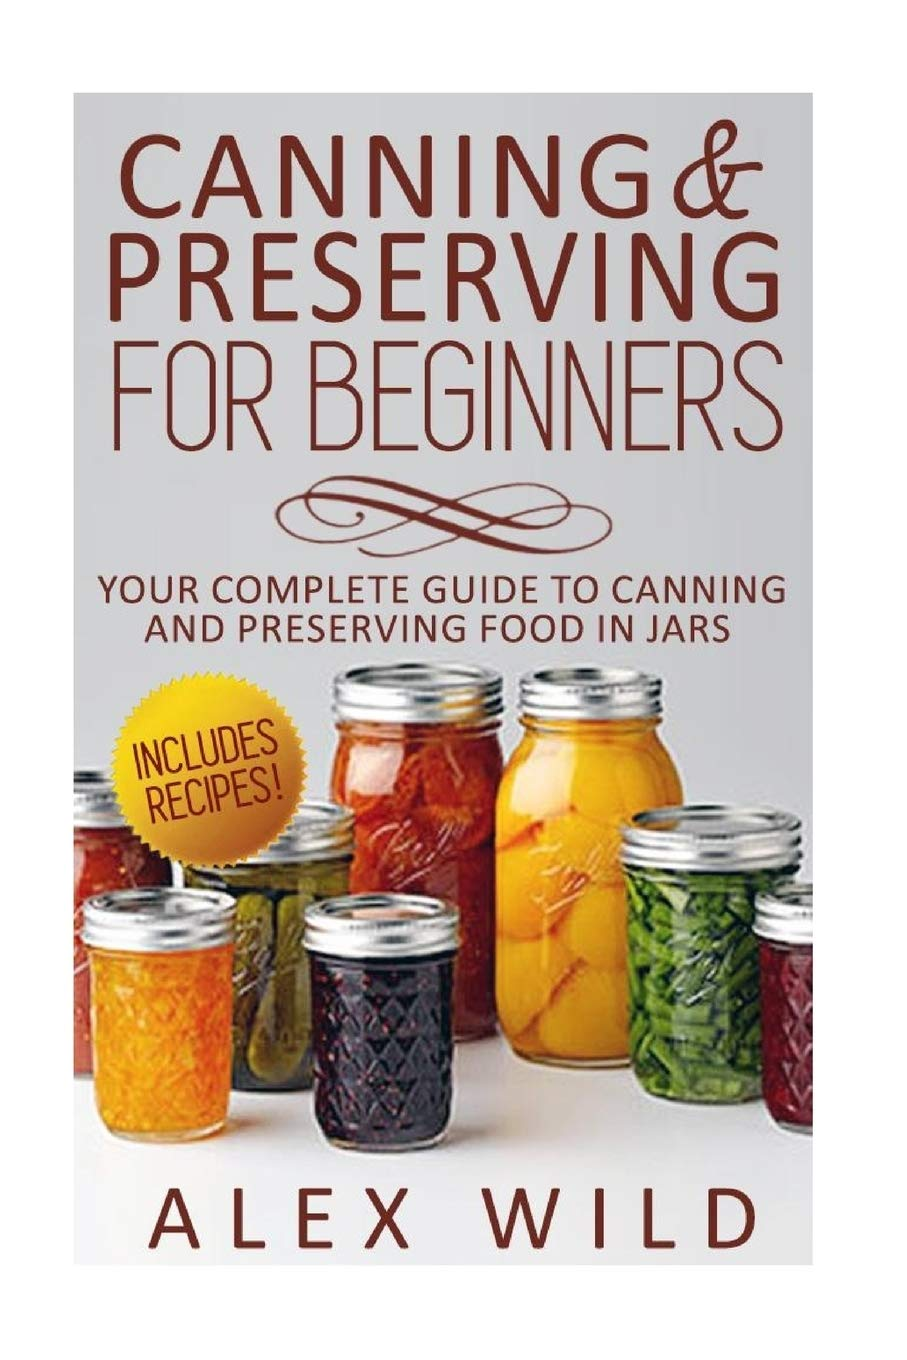 Image OfCanning And Preserving For Beginners: Your Complete Guide To Canning And Preserving Food In Jars (Better Living Books) (Vo...